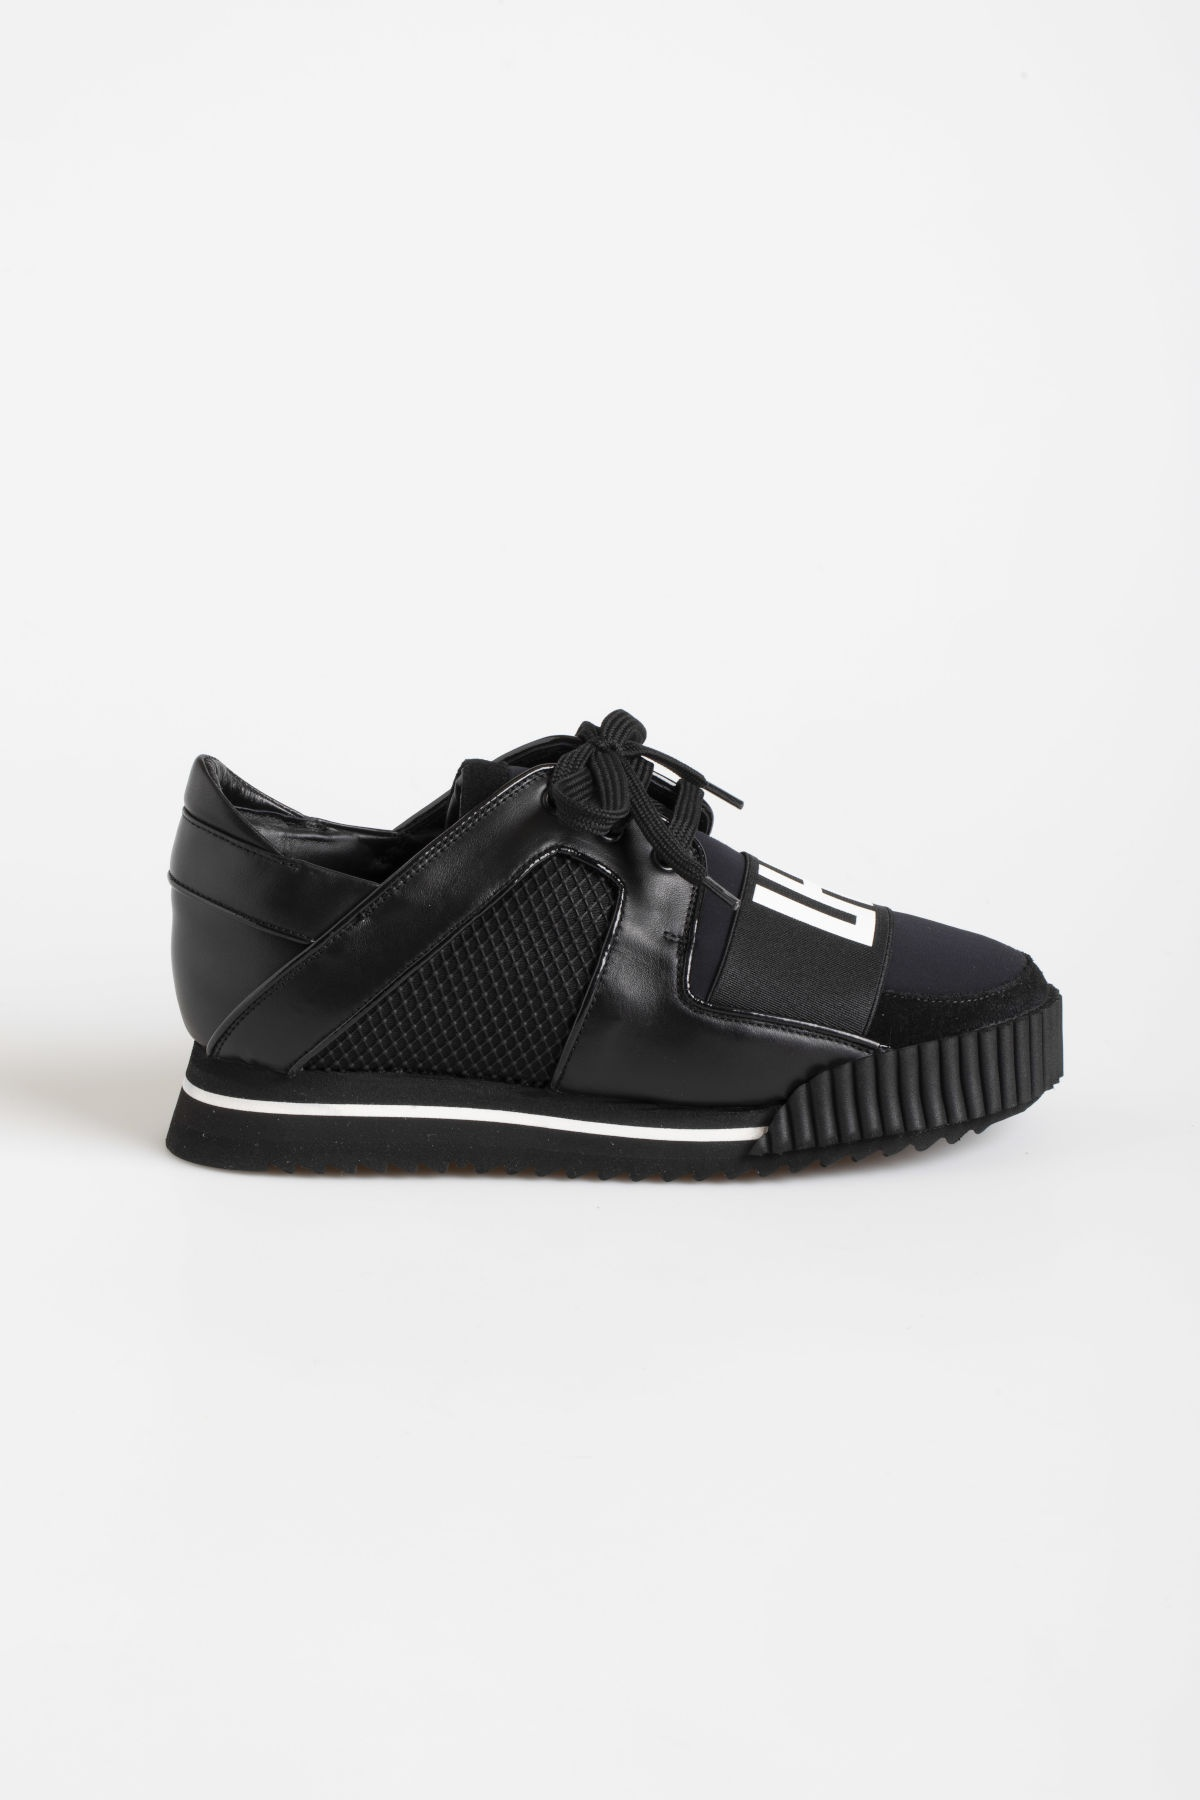 Shoes for man LES HOMMES URBAN F/W 19-20